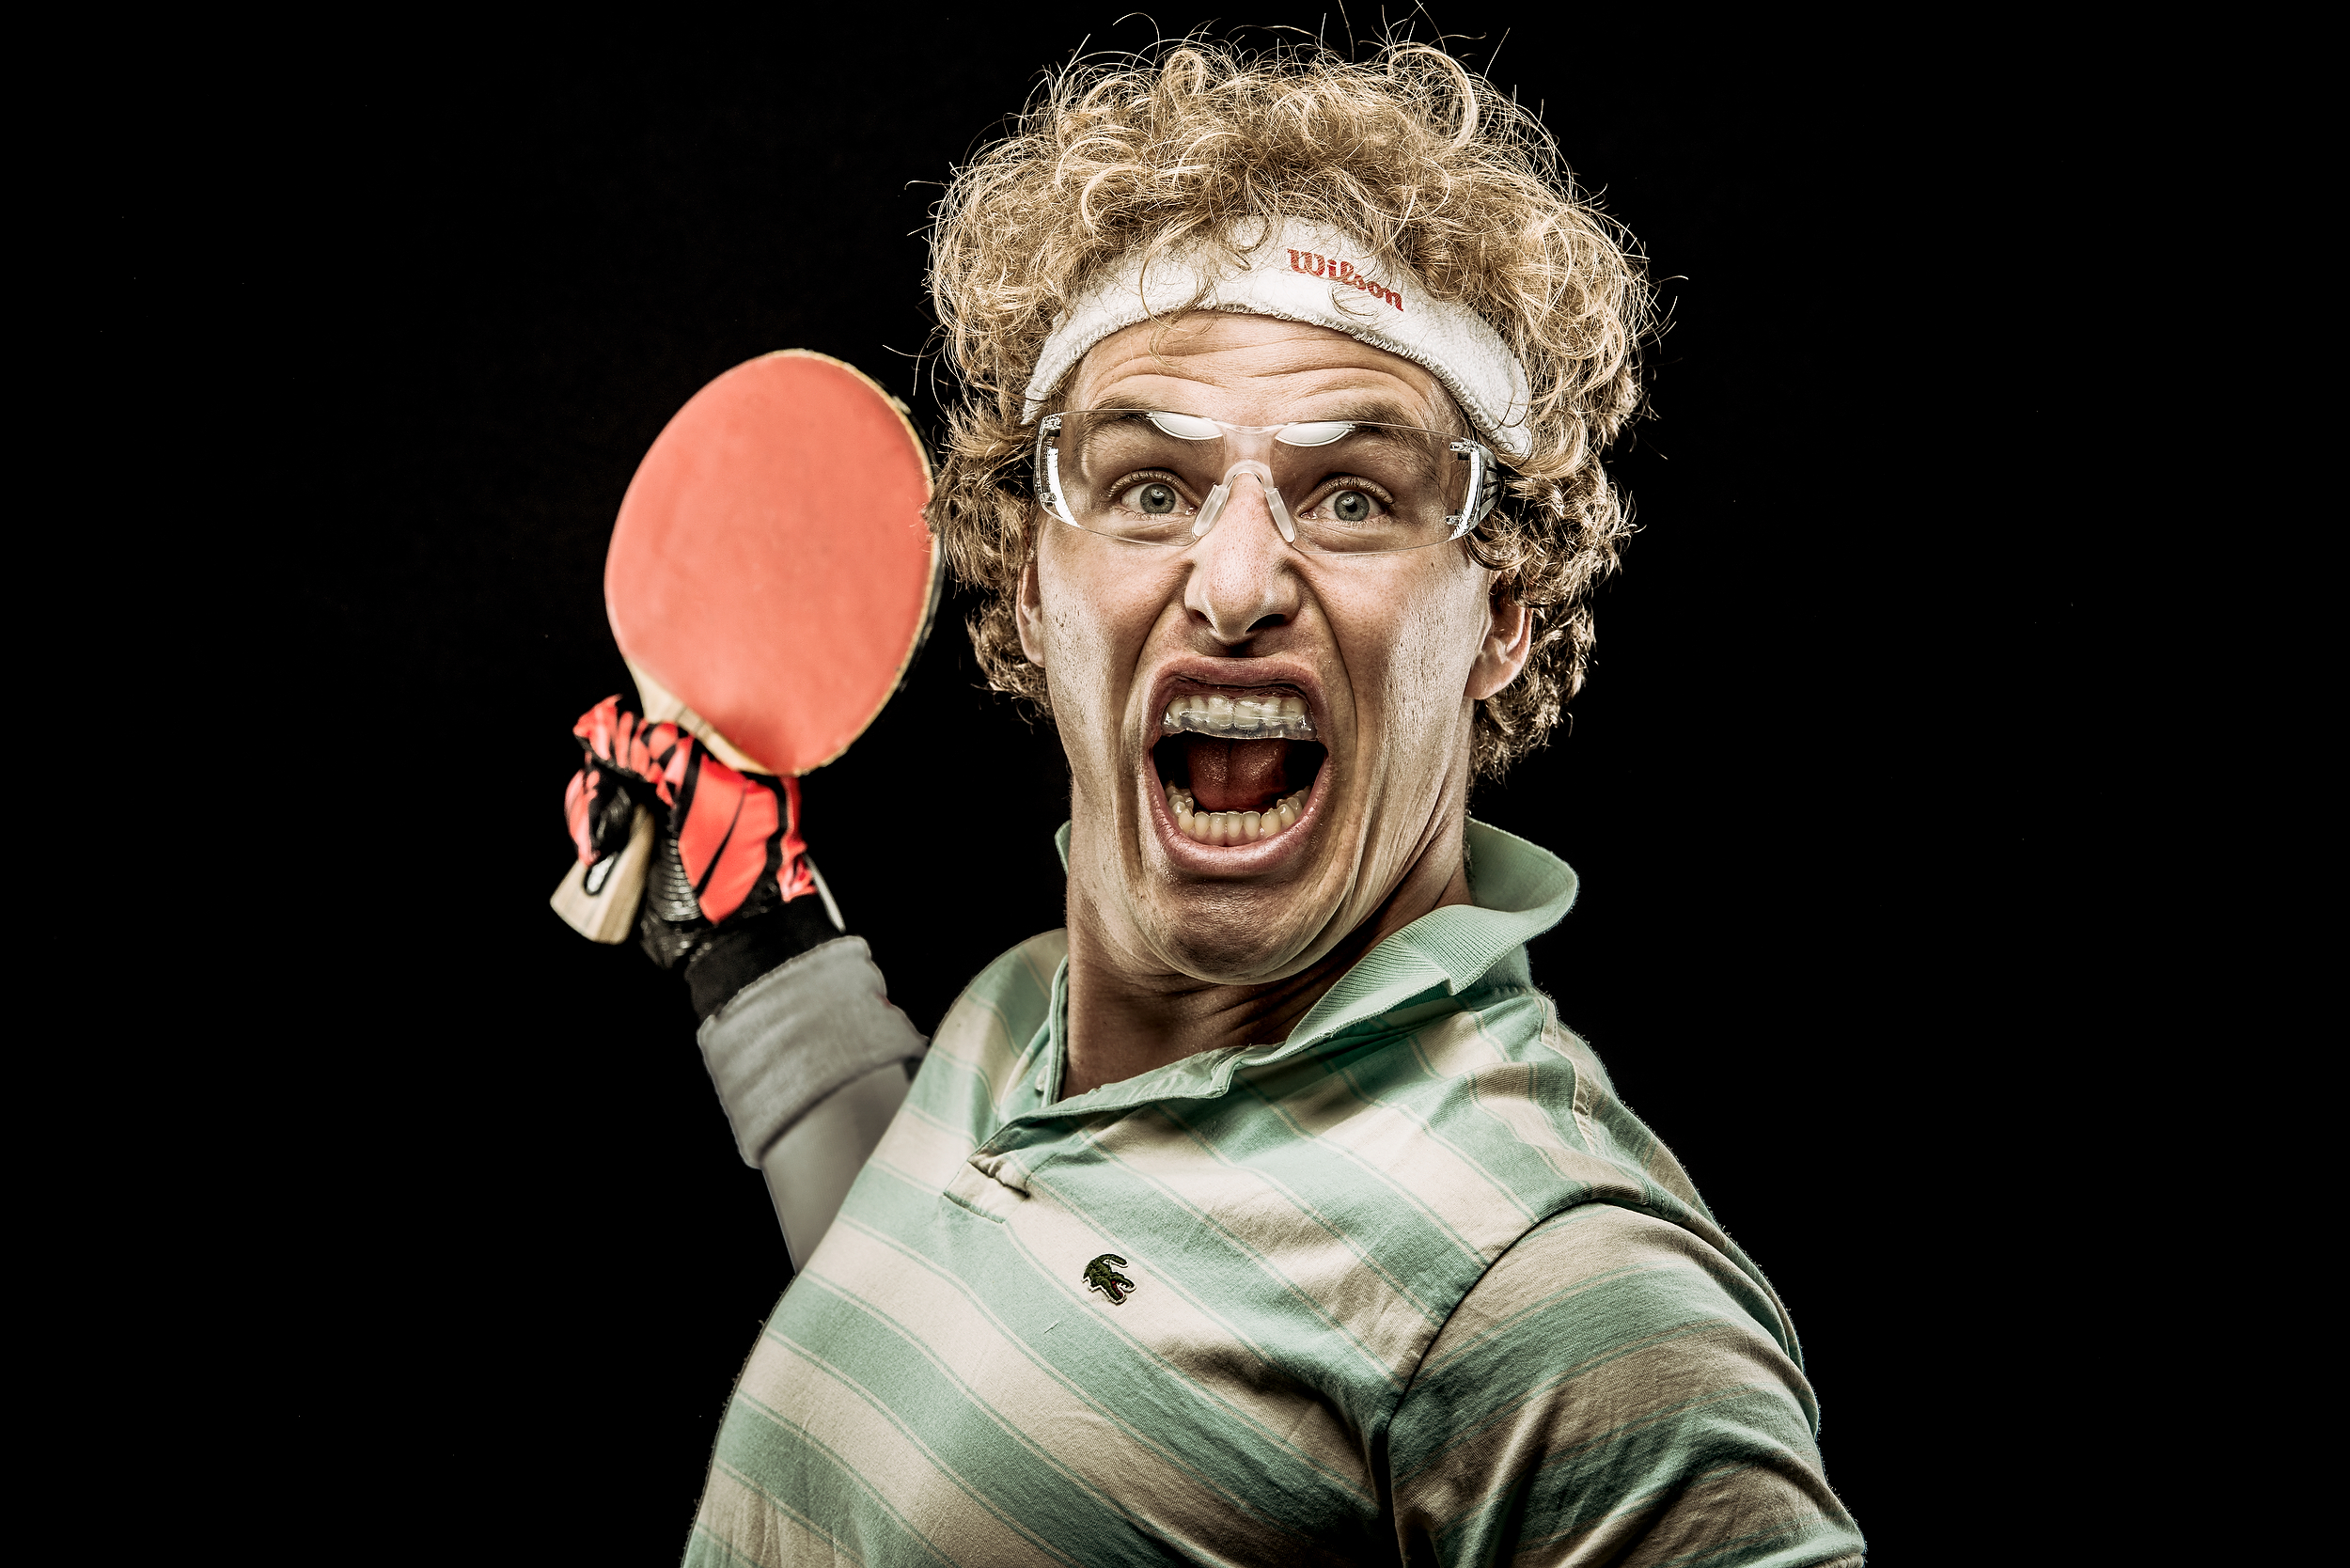 Table Tennis Player Portrait